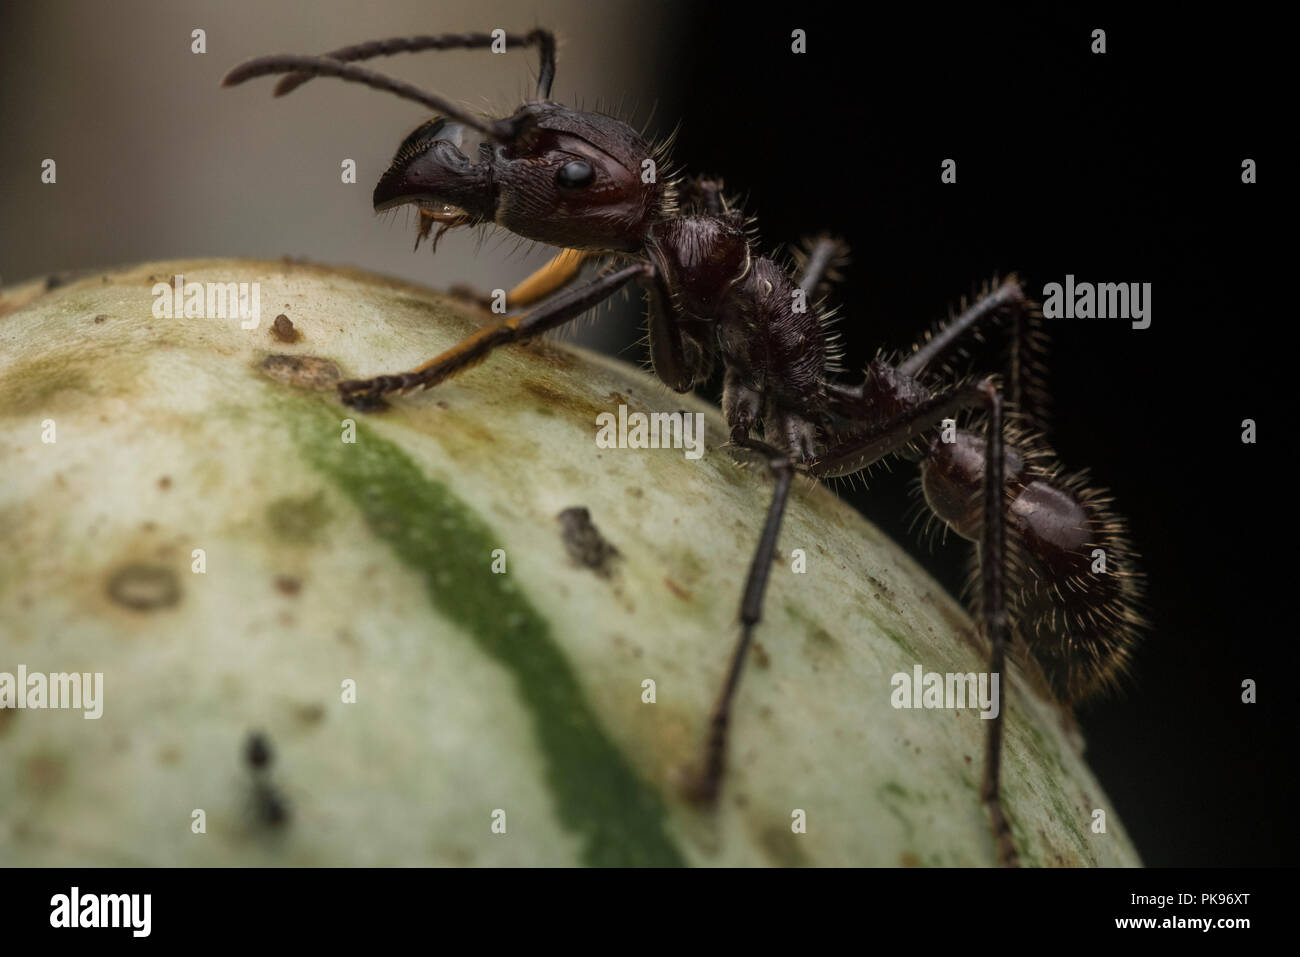 A bullet ant (Paraponera clavata) the most infamous of insects. It gets its notoriety from having one of the most painful stings in the world. Stock Photo